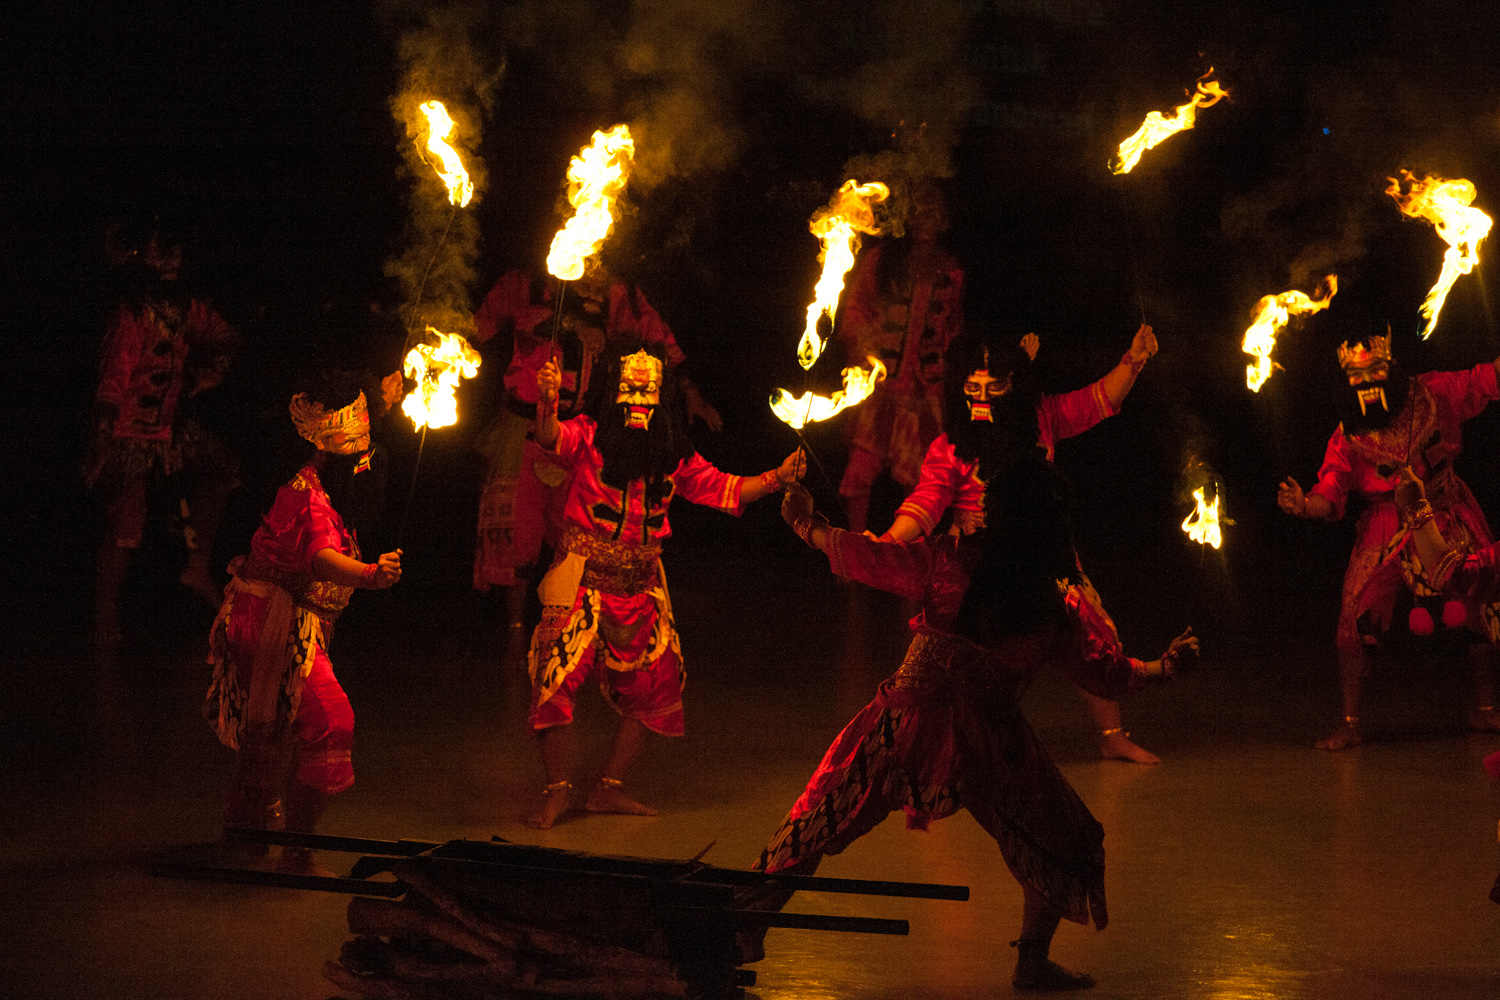 Ramayana Ballet perforemed nightly for tourists beside Prambanan Temple